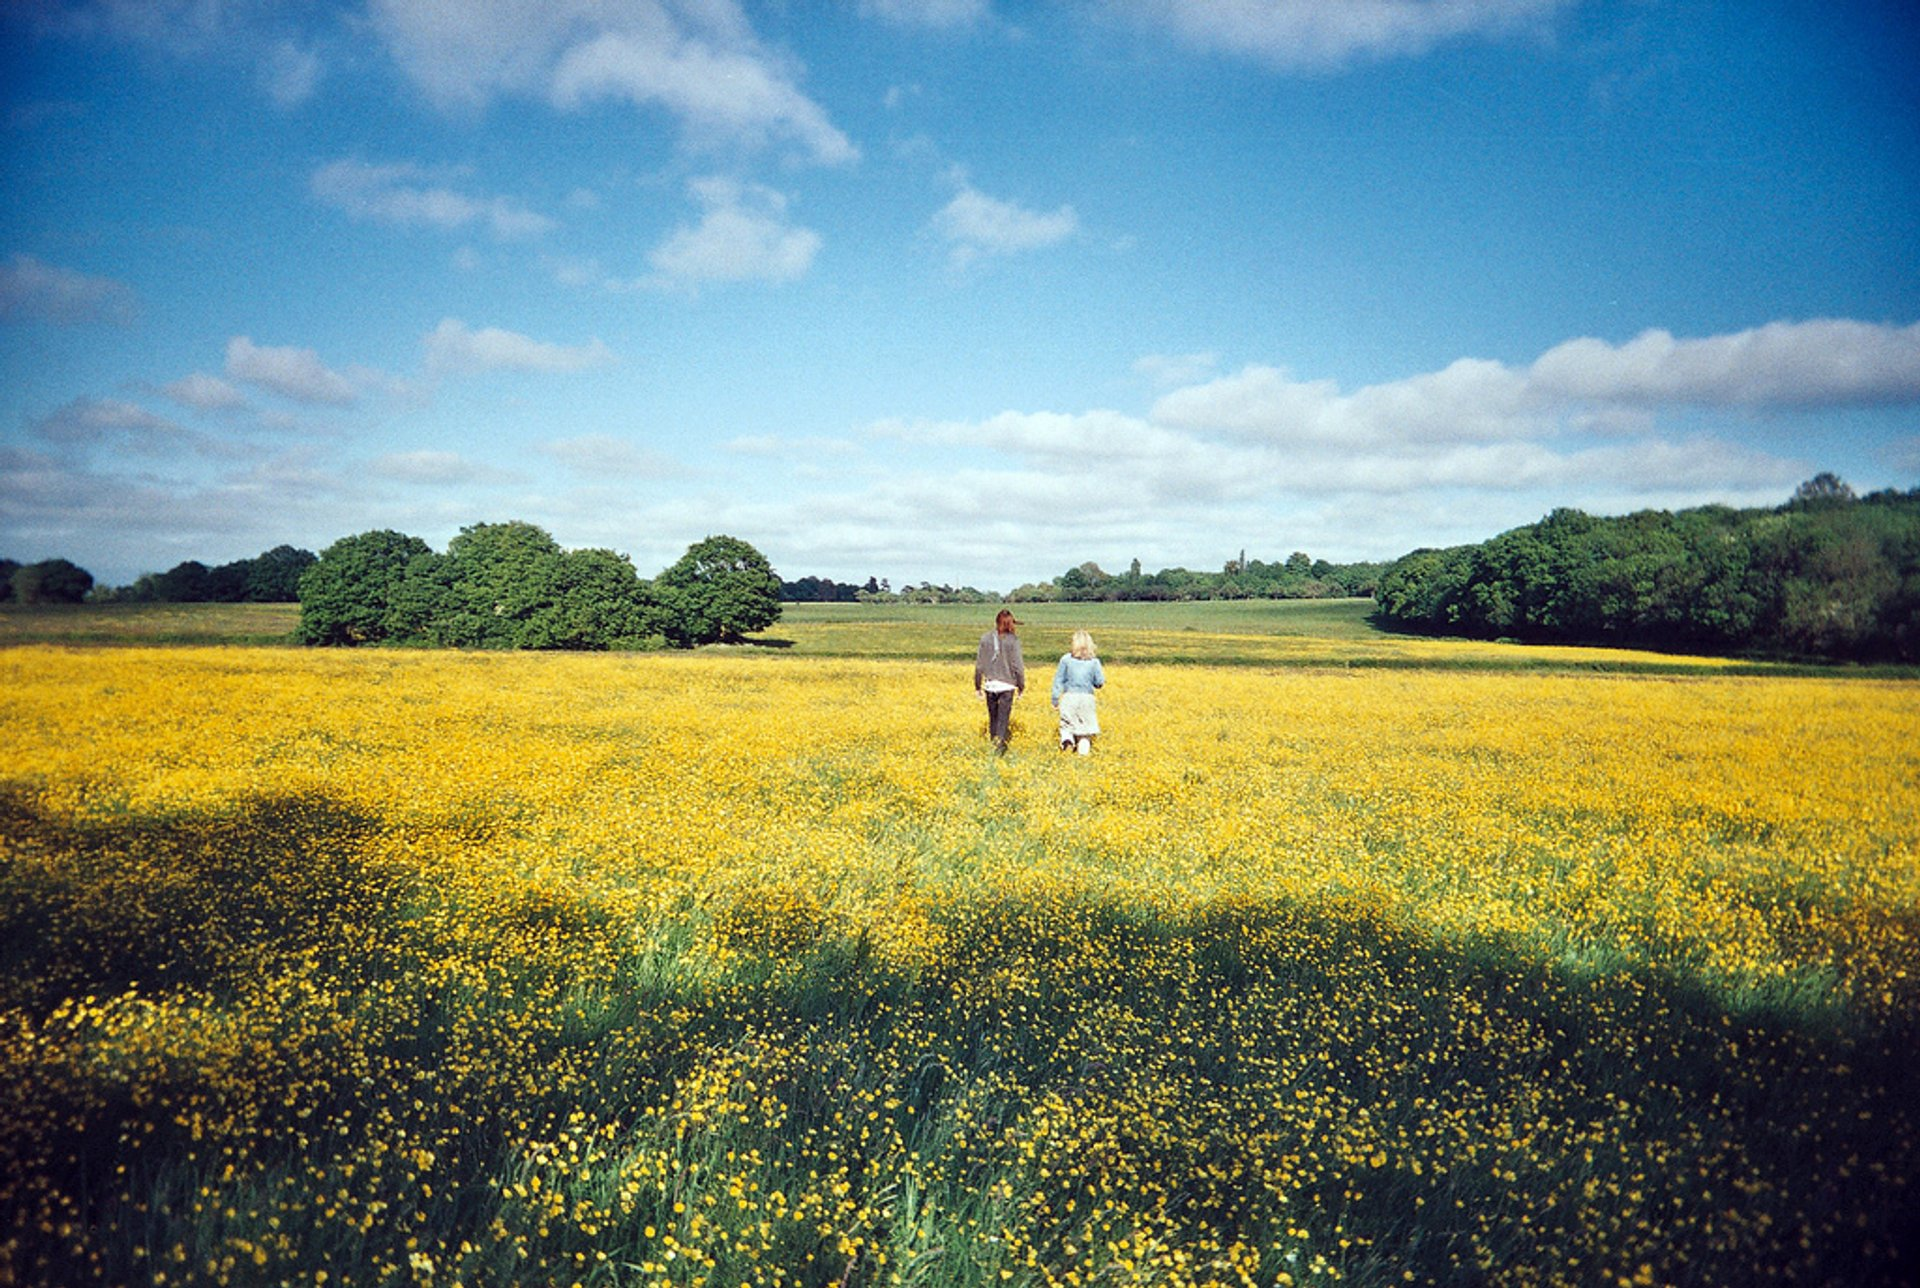 In a Field of Buttercups, July 2020